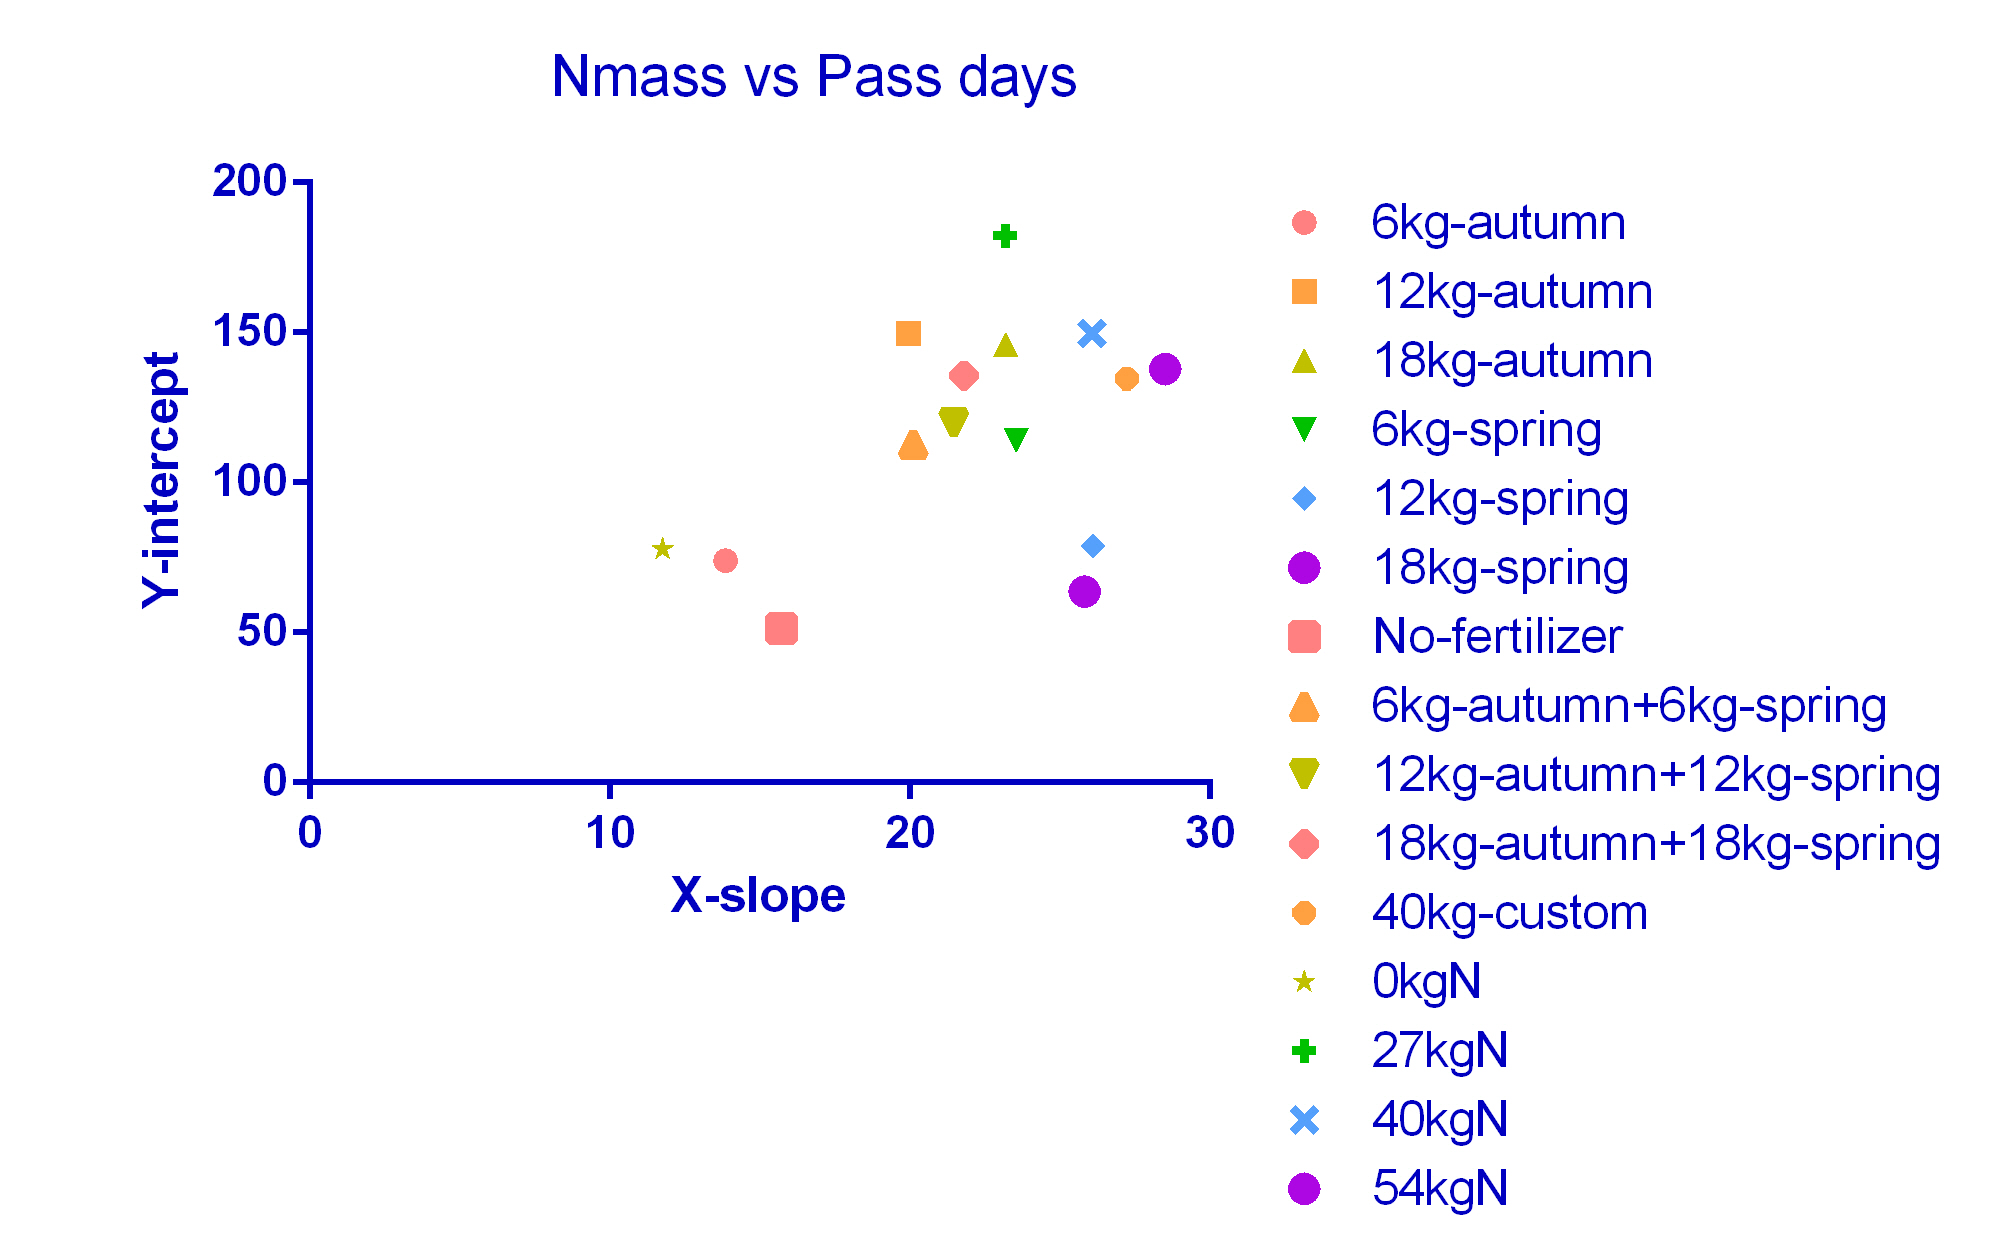 Nmass vs Pass days